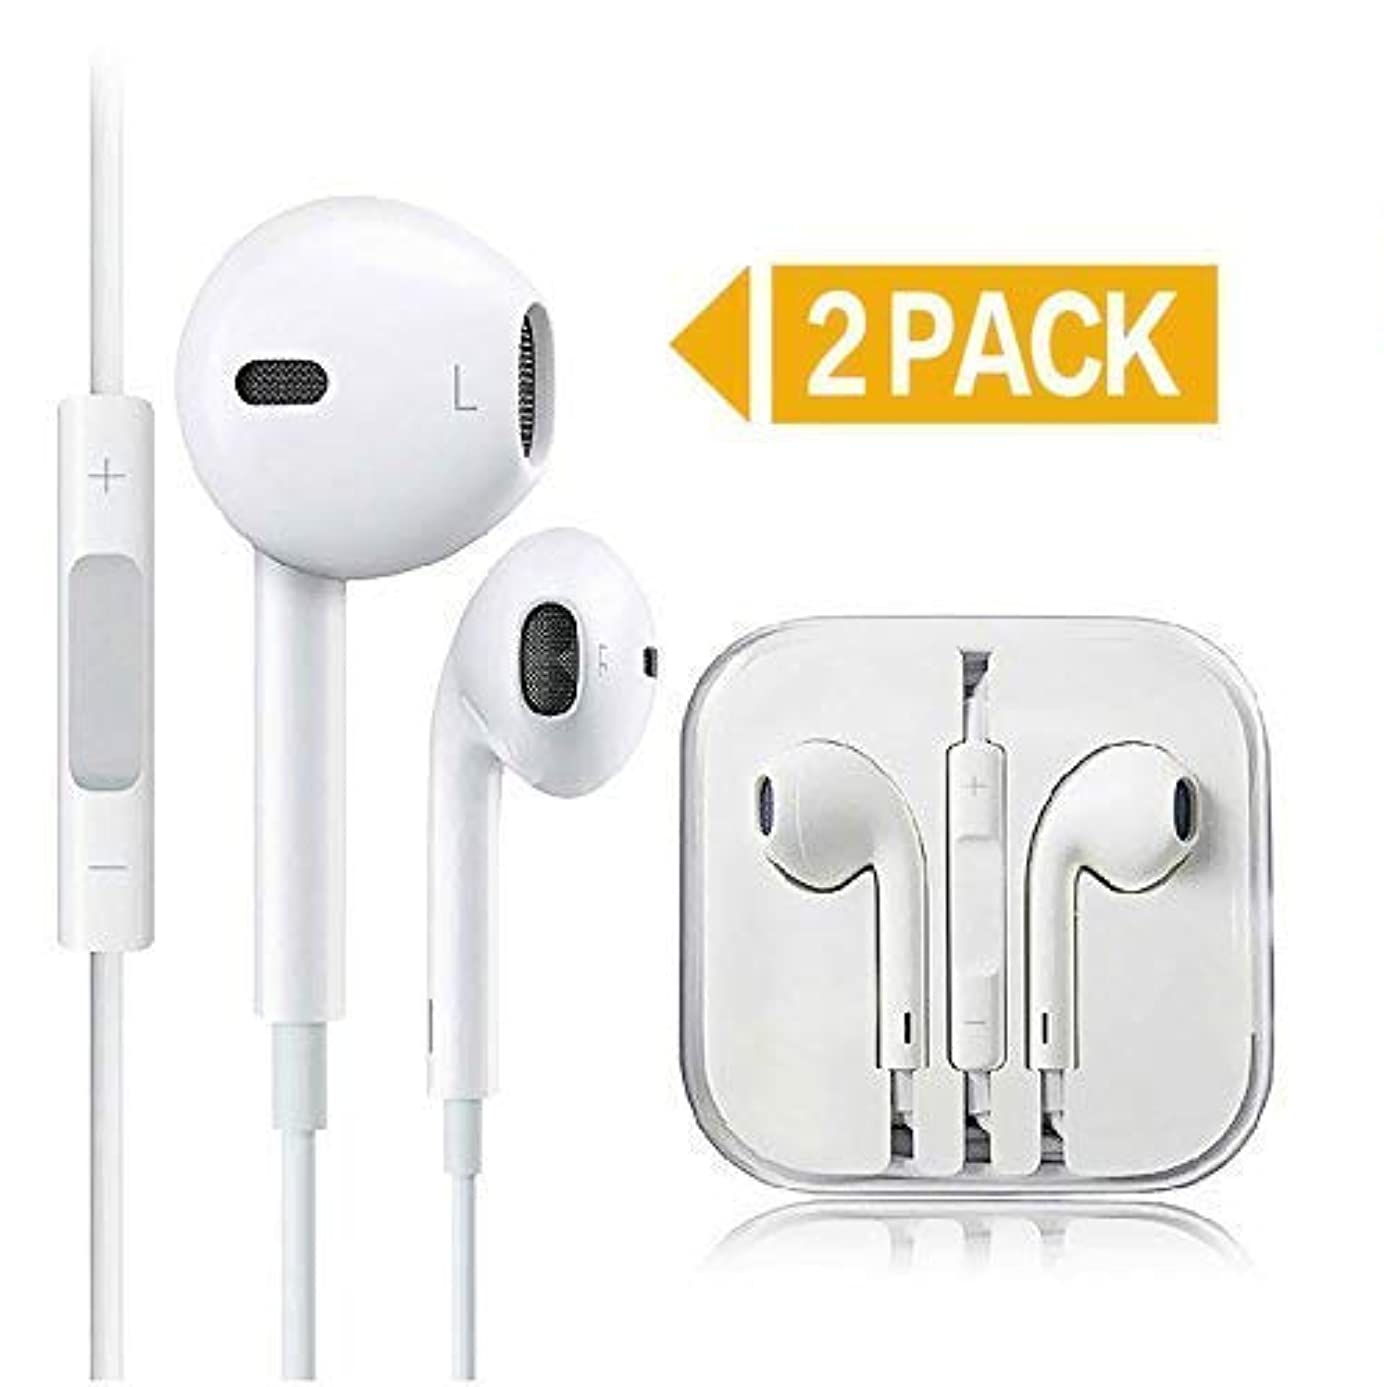 AOSHR Wireless Bluetooth Headphones,Bluetooth 4.1 Earbuds Sport Stereo Headset, Running Headphones/Exercise Bluetooth Earbus, Noise Cancelling Sweat Proof Earphones